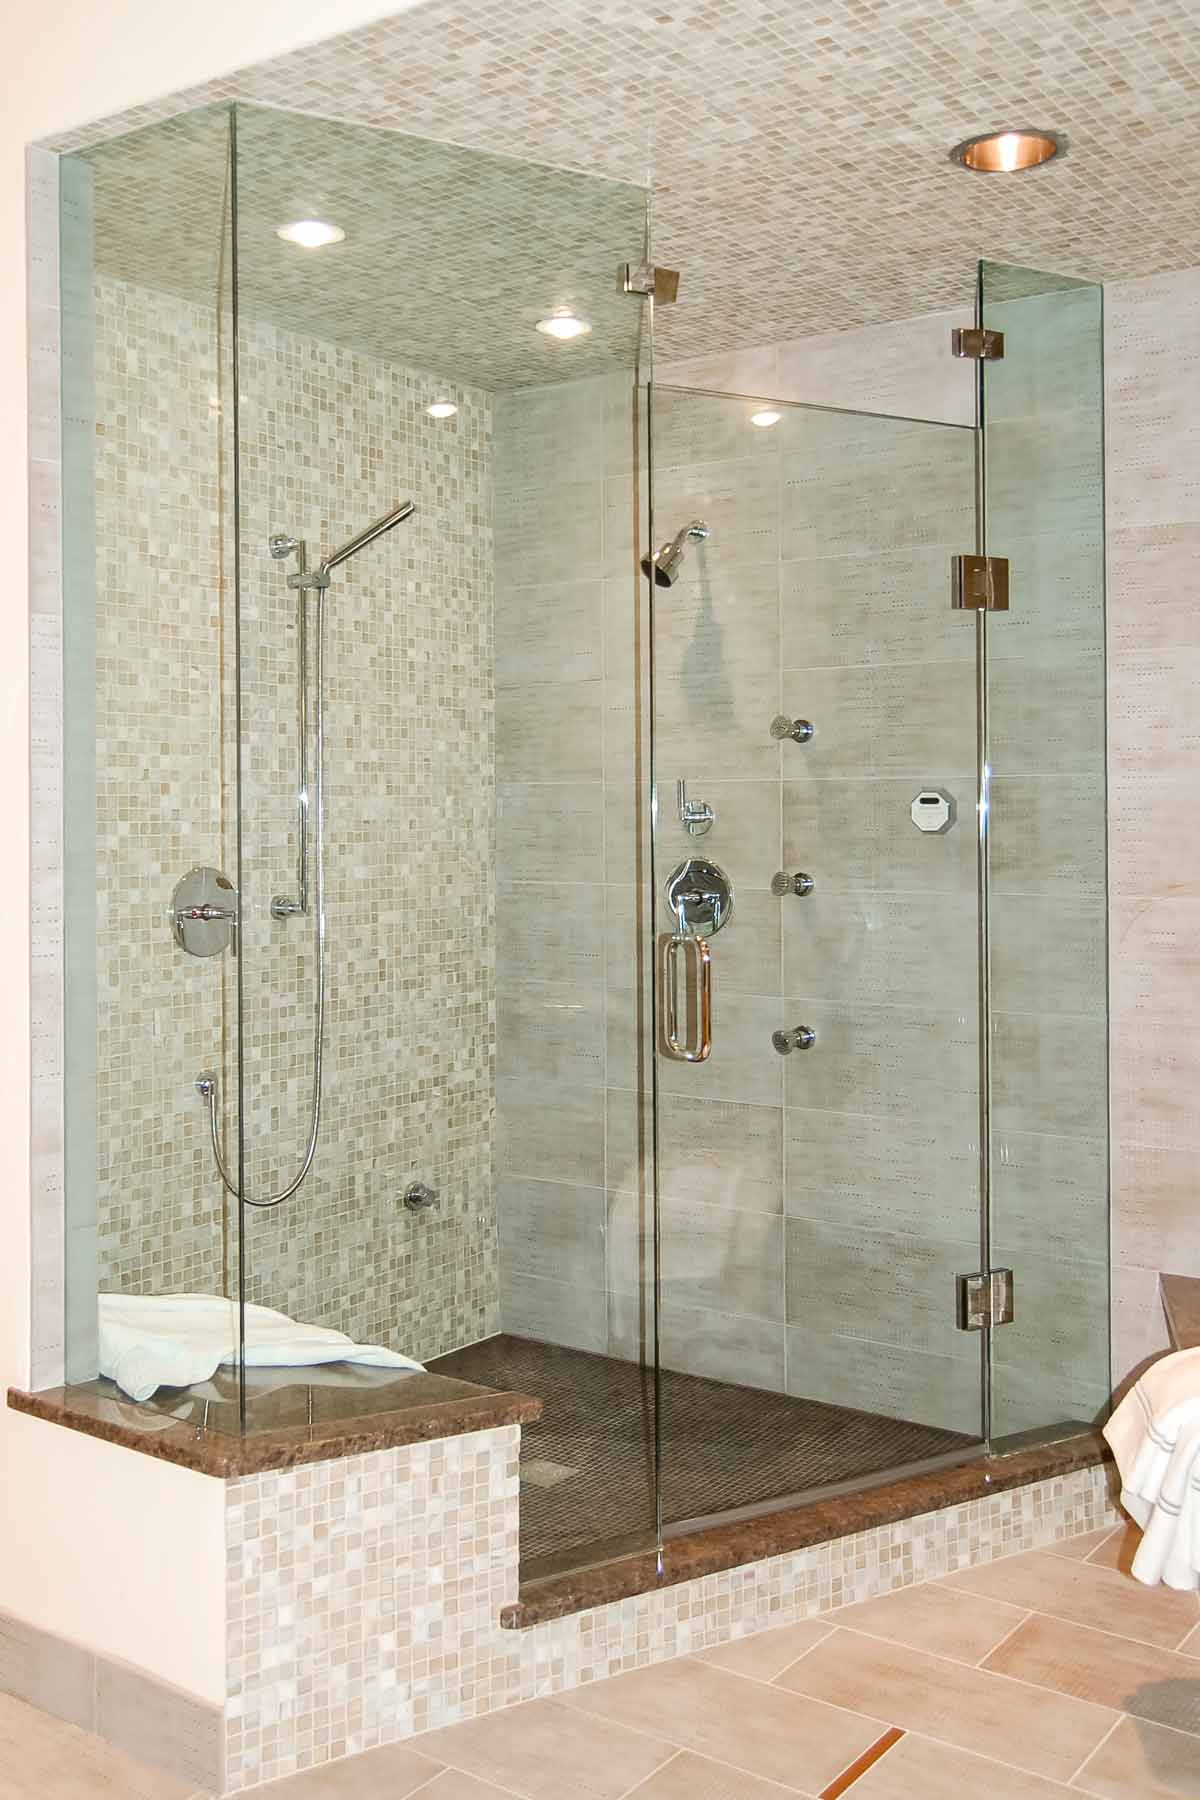 The master suite has a side by side steam shower and tub that combines glass and porcelain tiles.